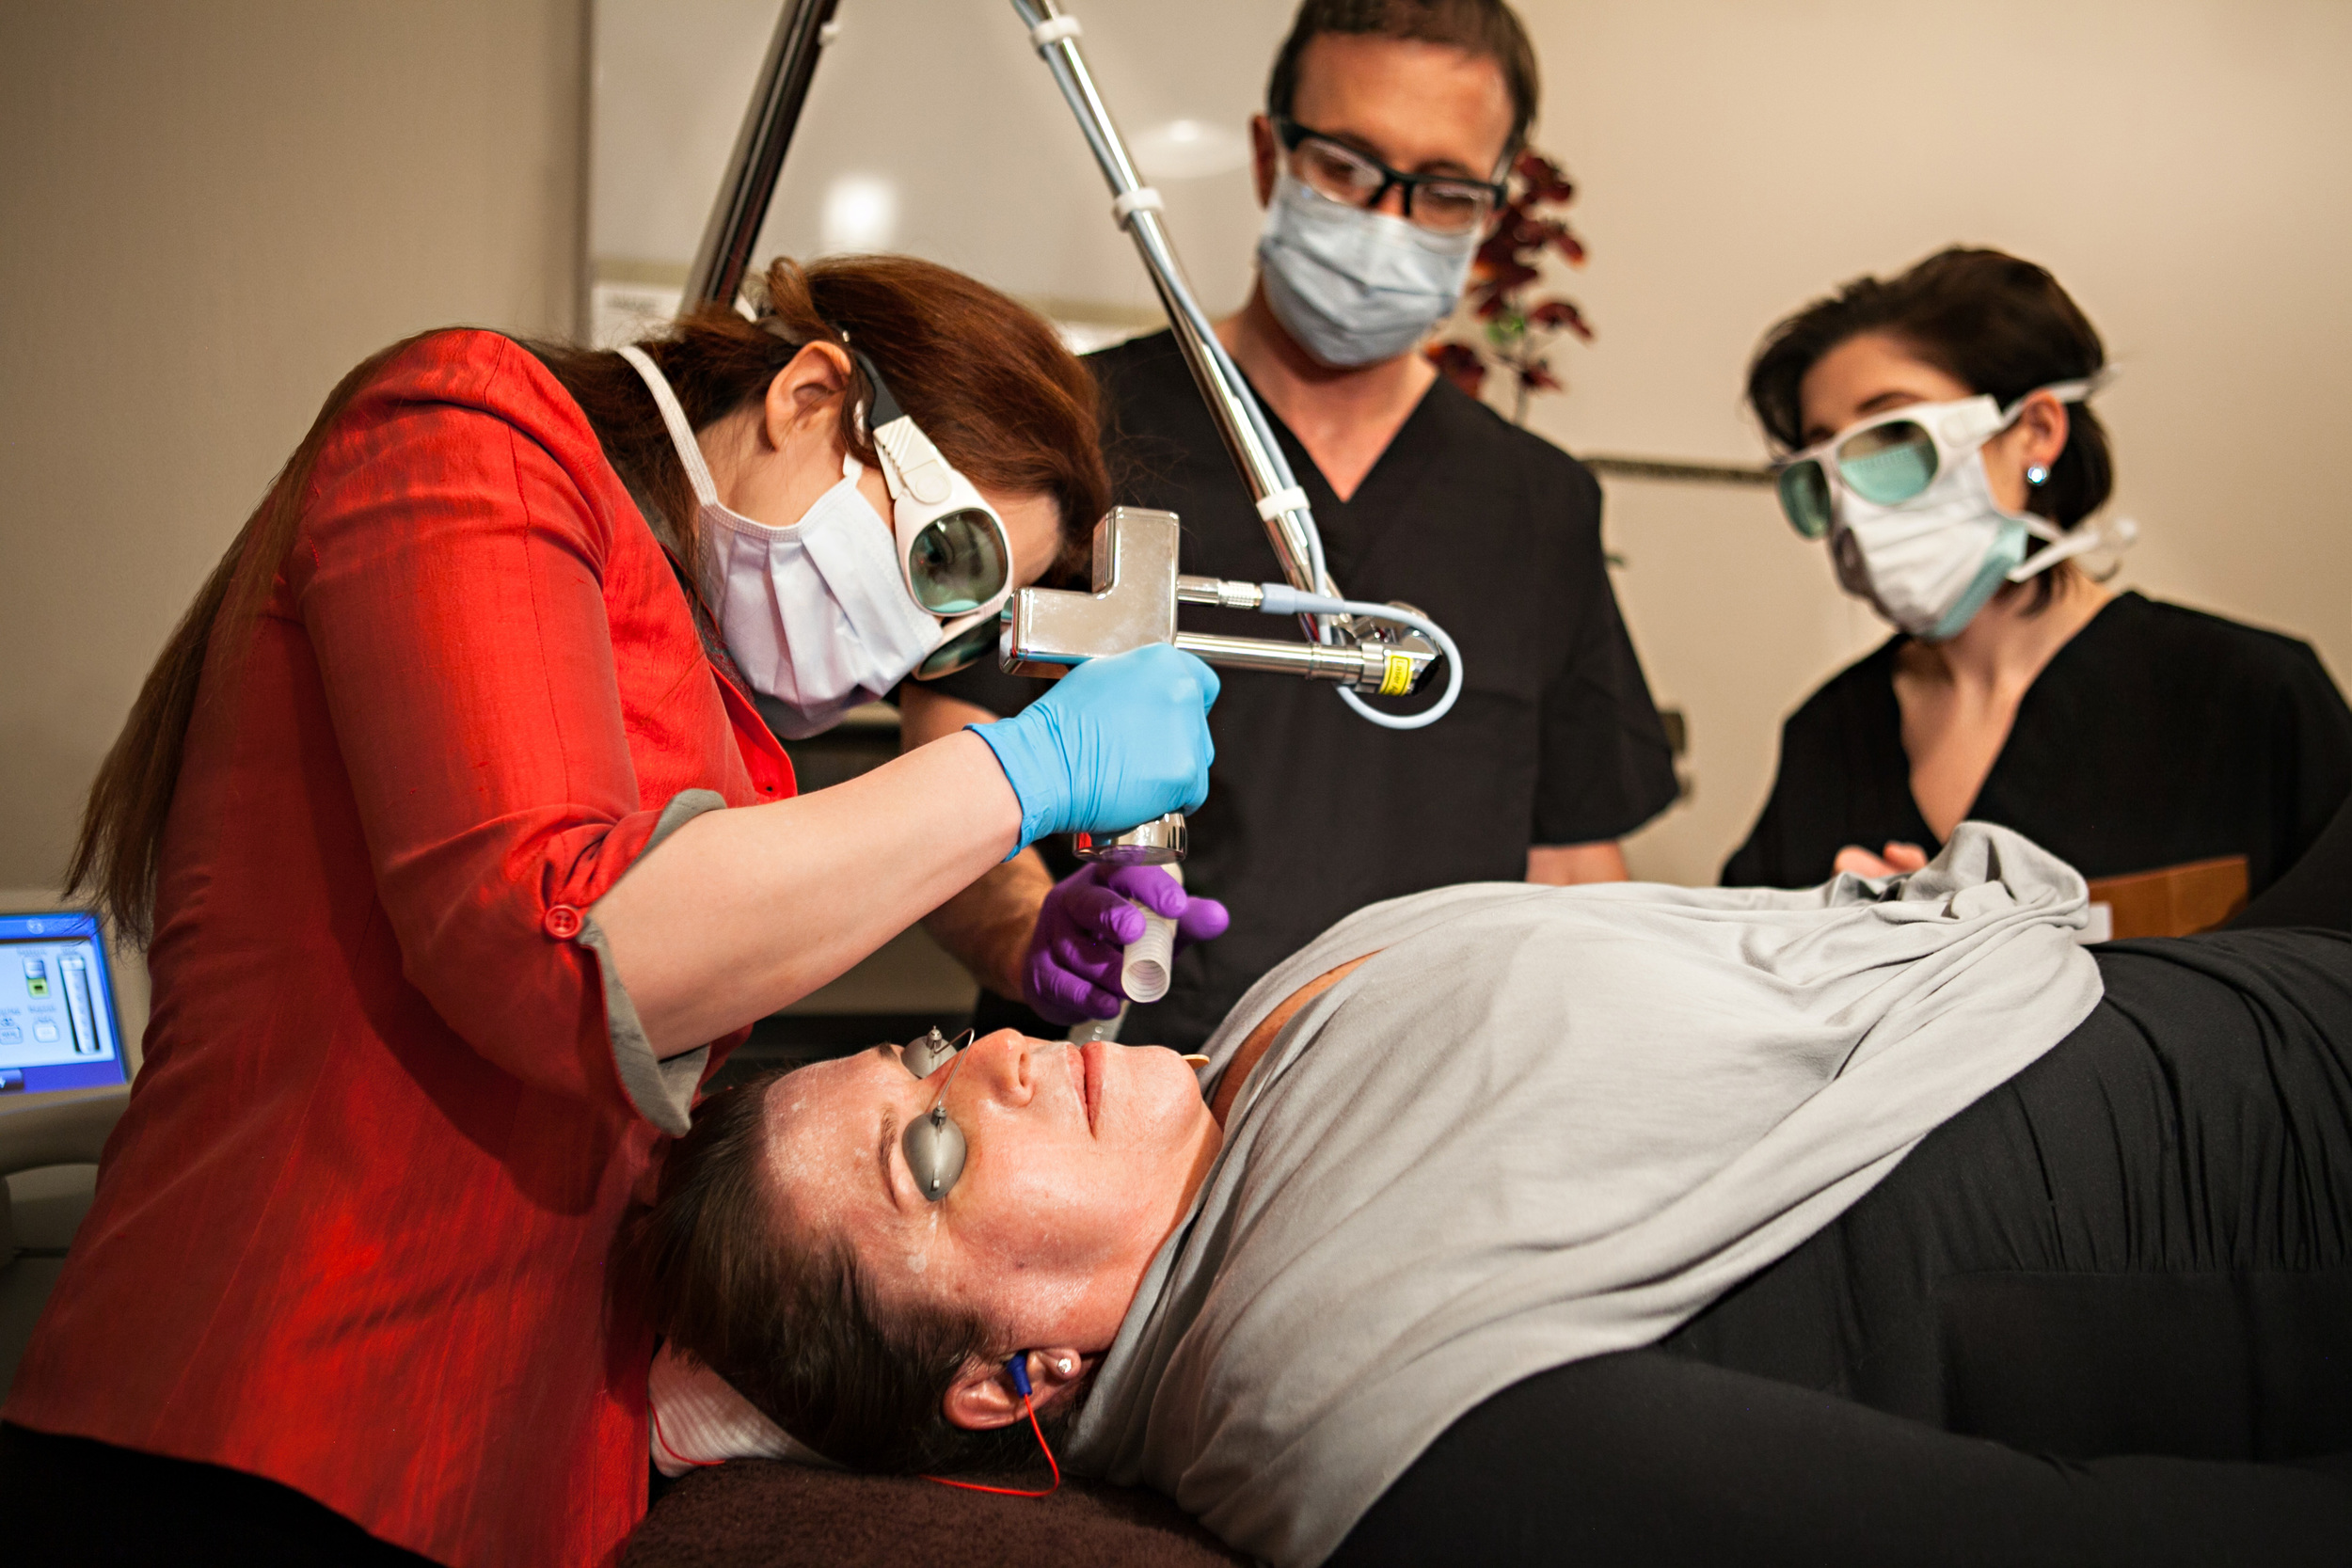 Training Sciton's Erbium:YAG laser, from light MicroLaserPeels to deep resurfacing